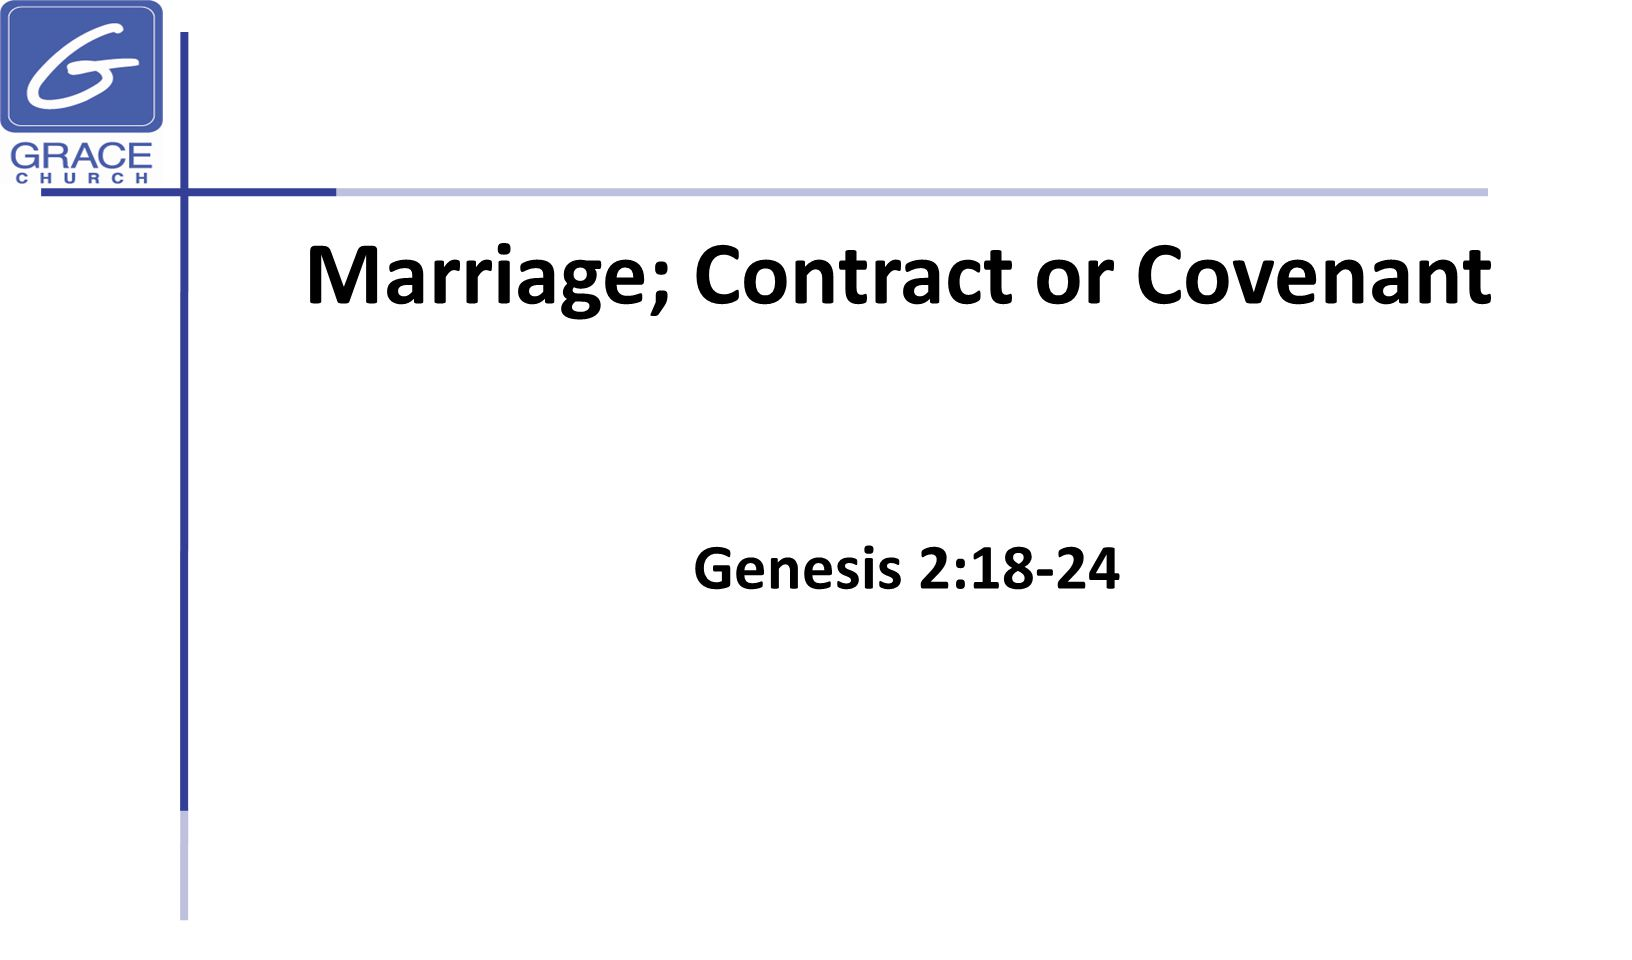 PTR Marriage is a covenant between God and a man and a woman.